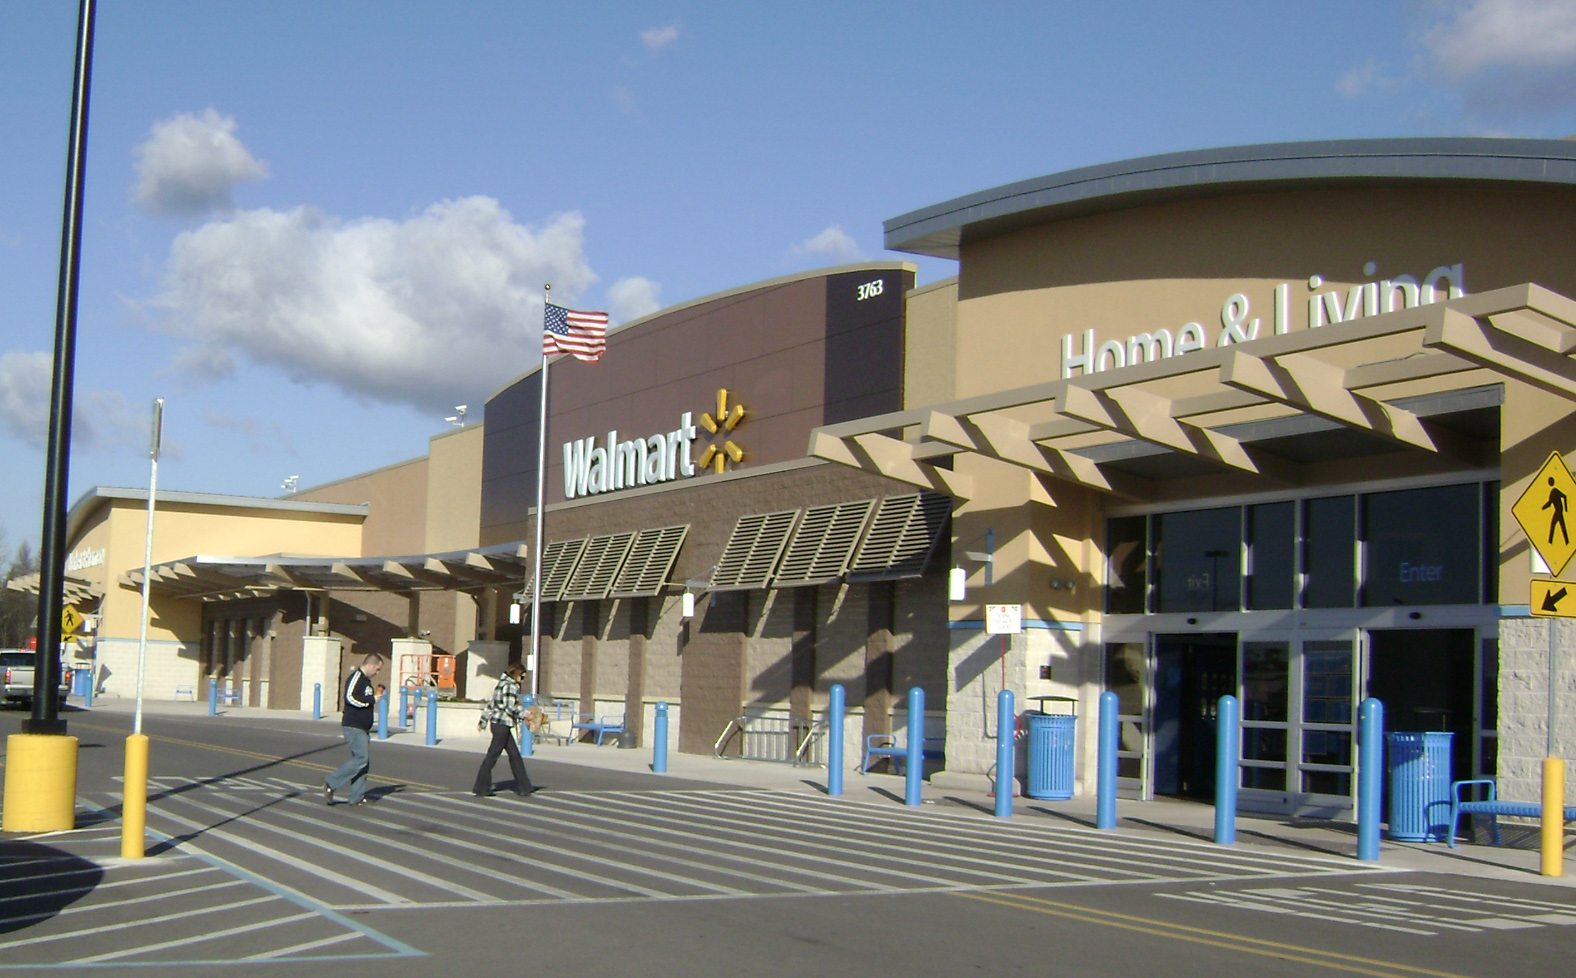 Full Architecture And Engineering Services To Wal Mart Stores, Inc.